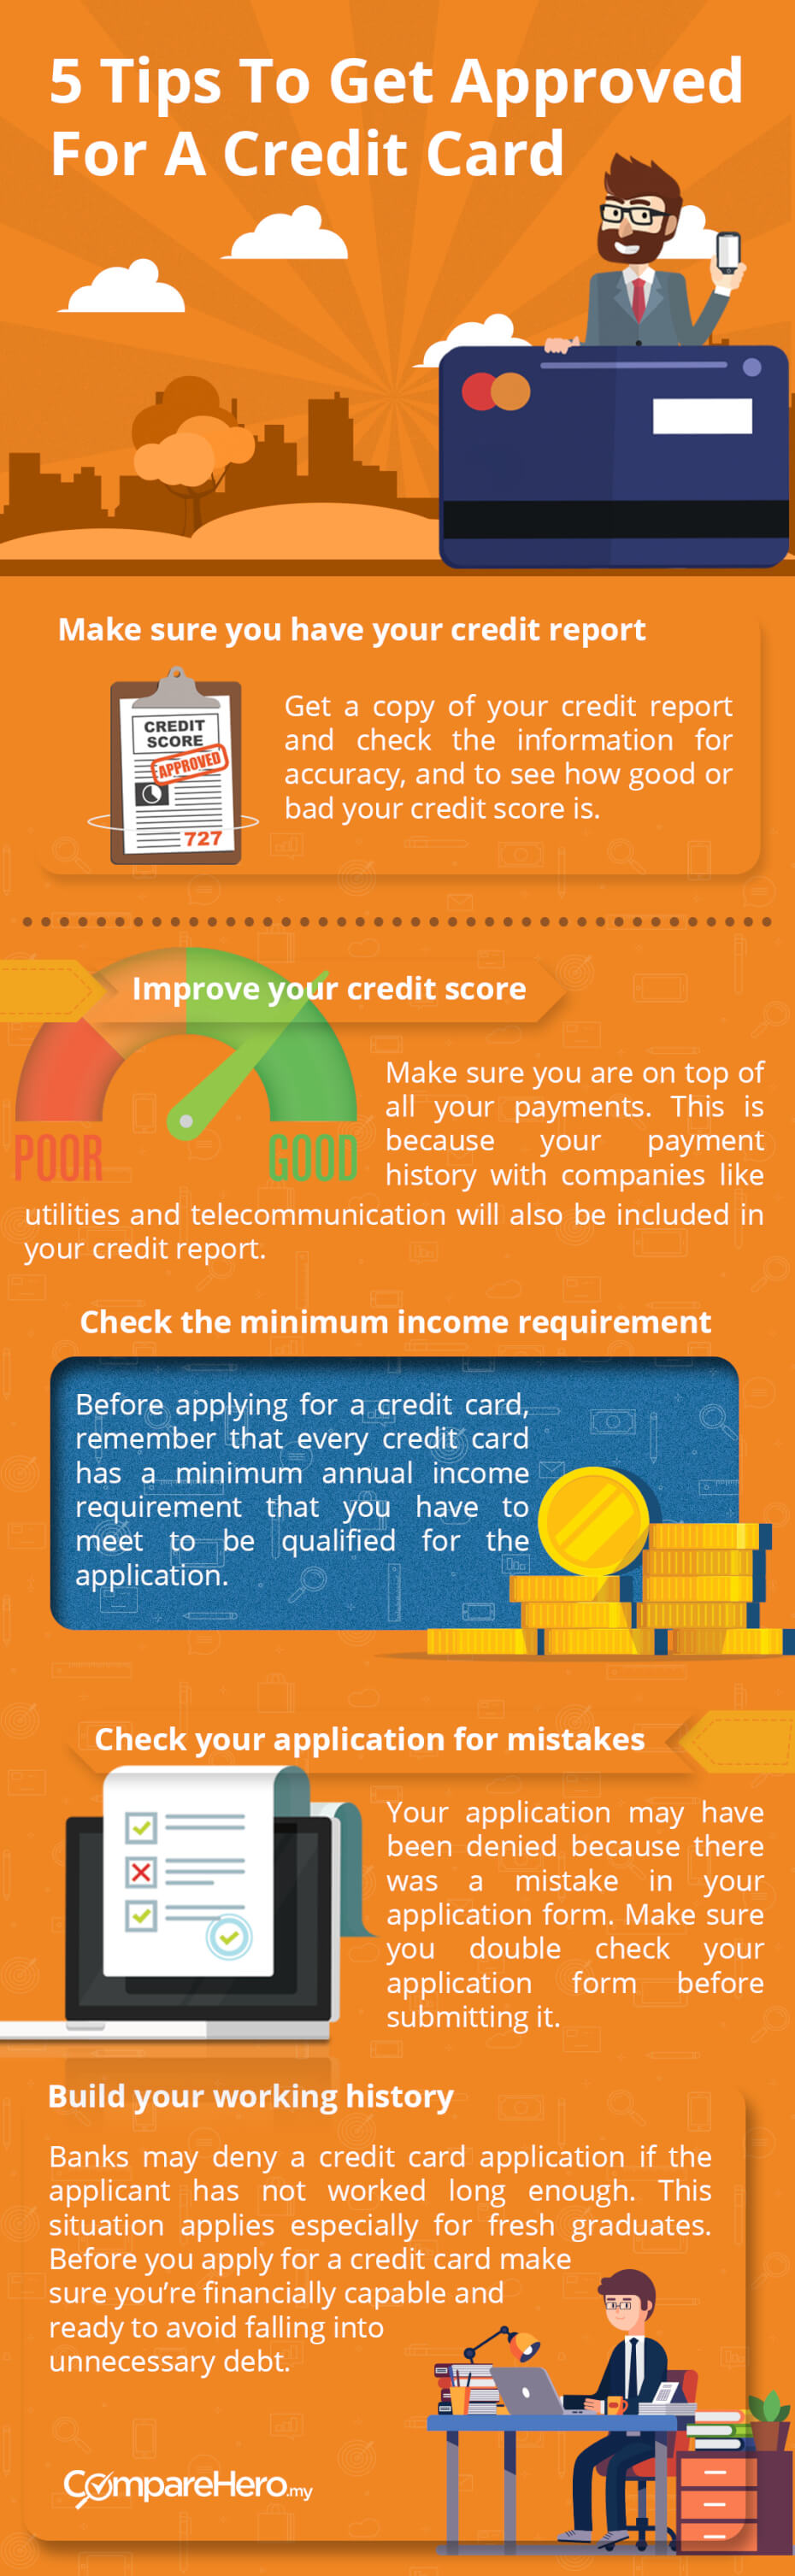 5_tips_to_get_approved_for_a_credit_card_